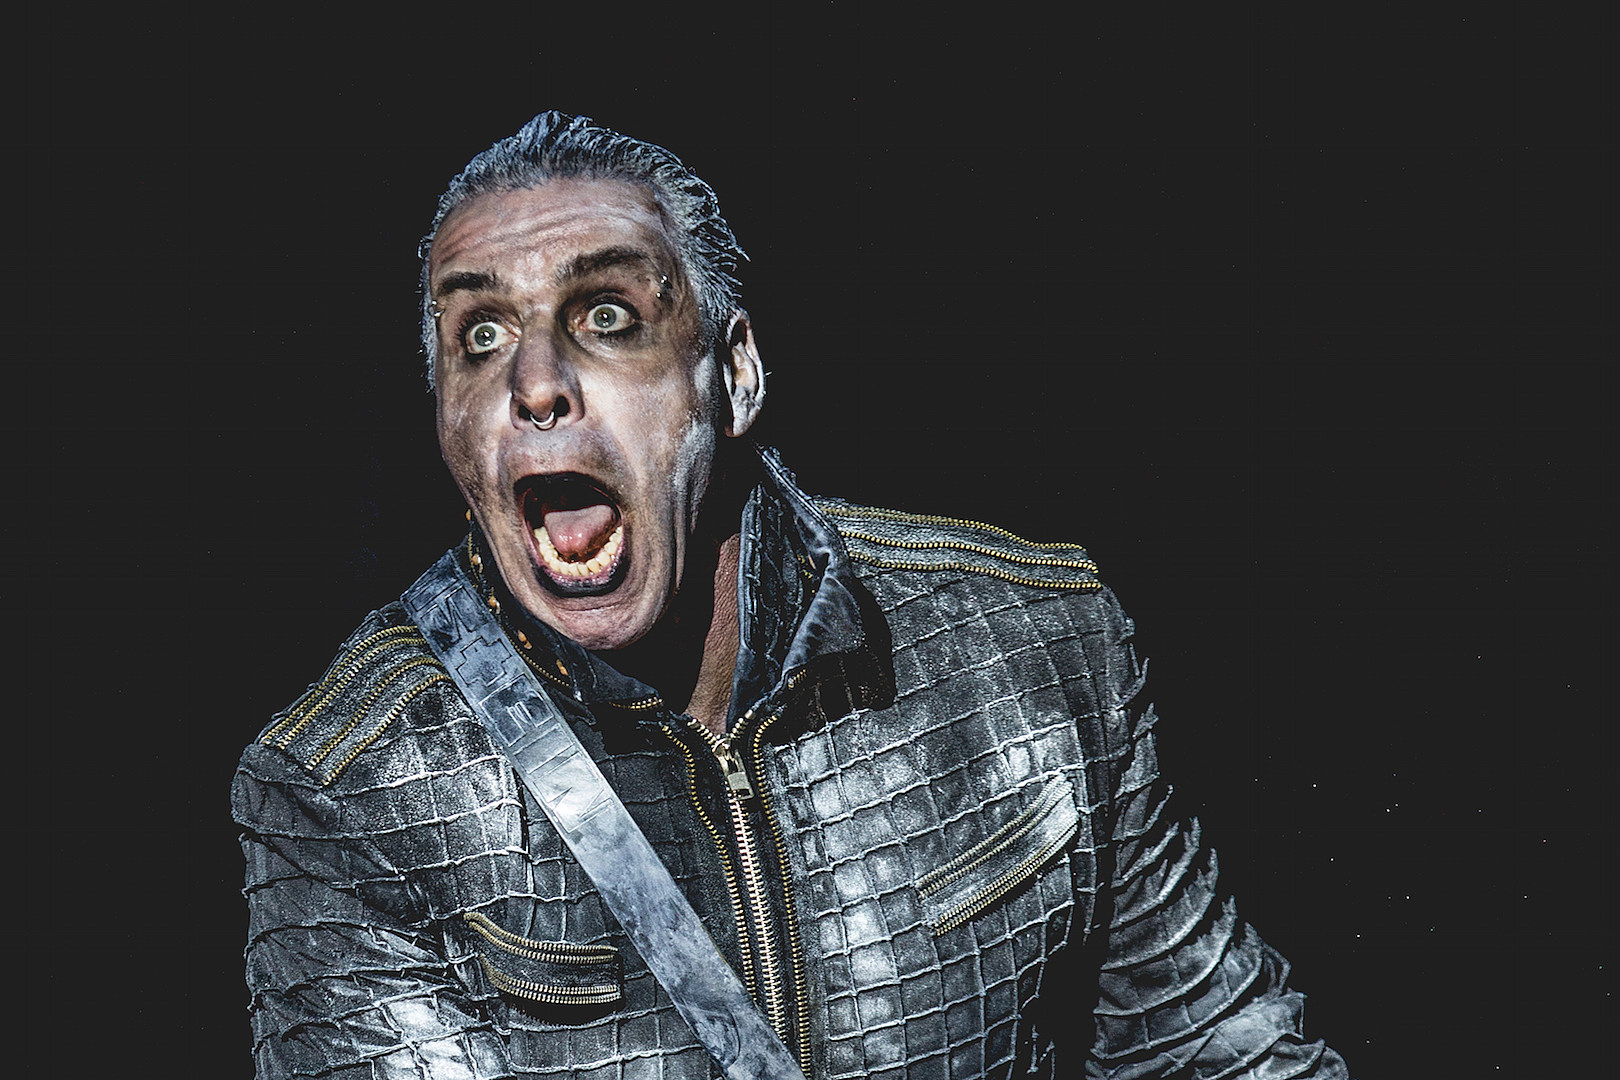 Here Are the English Lyrics to Rammstein's 'Radio'